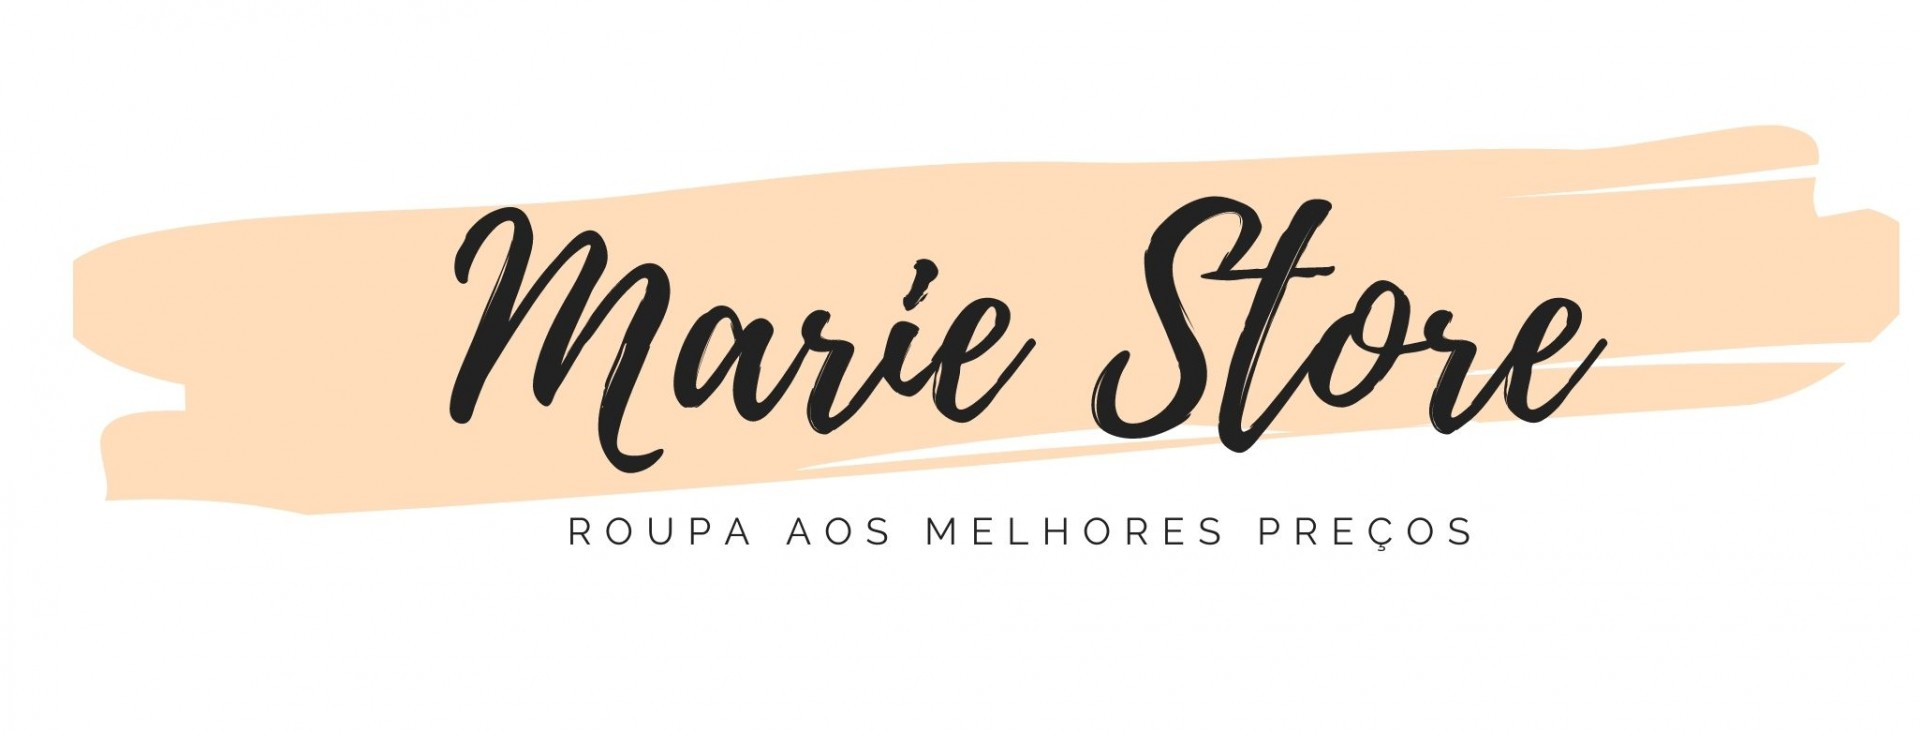 Marie Store